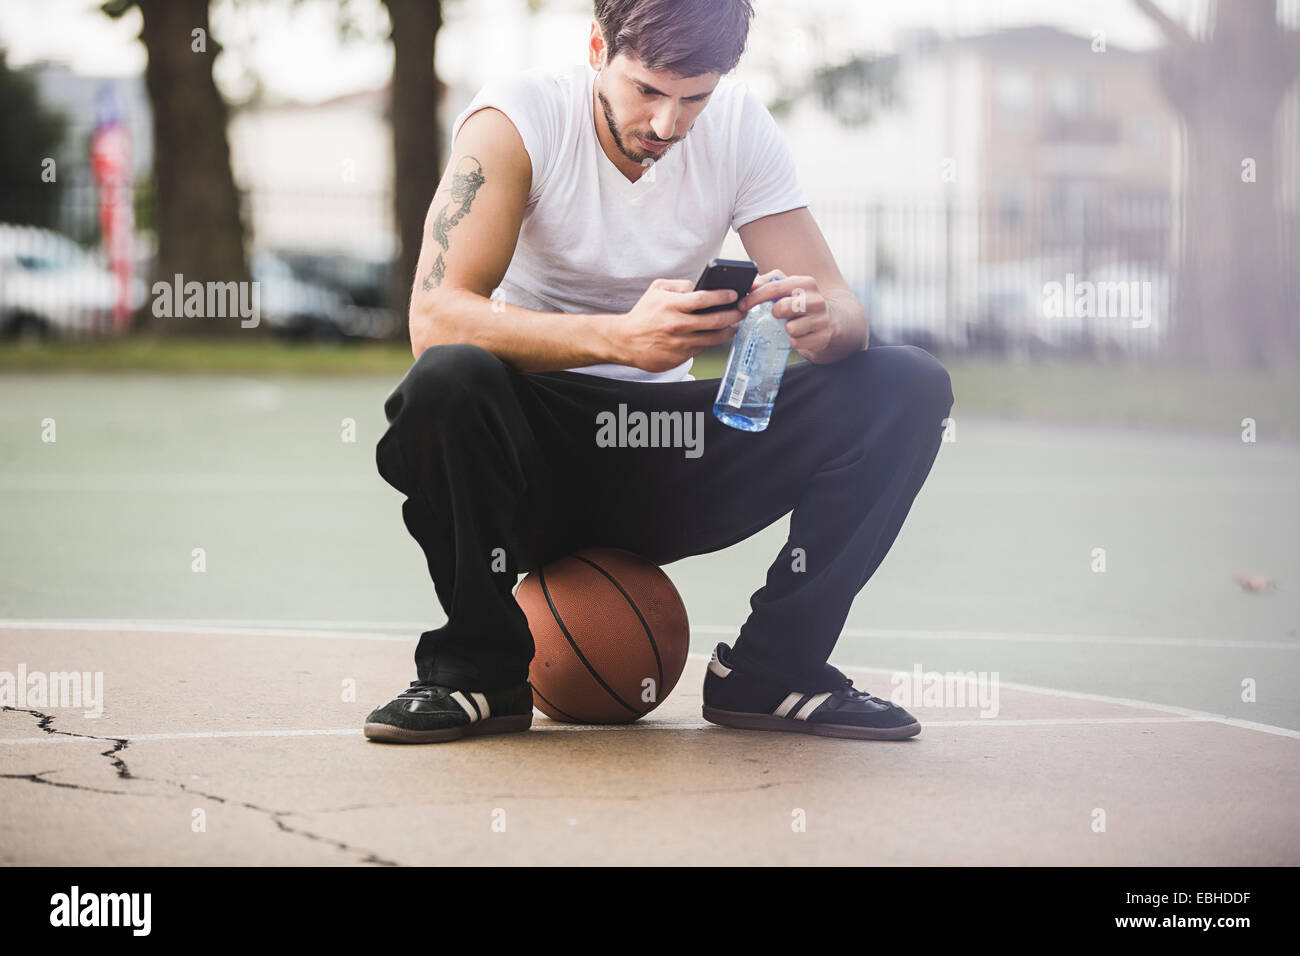 Jeune homme assis sur le basket ball texting on smartphone Photo Stock